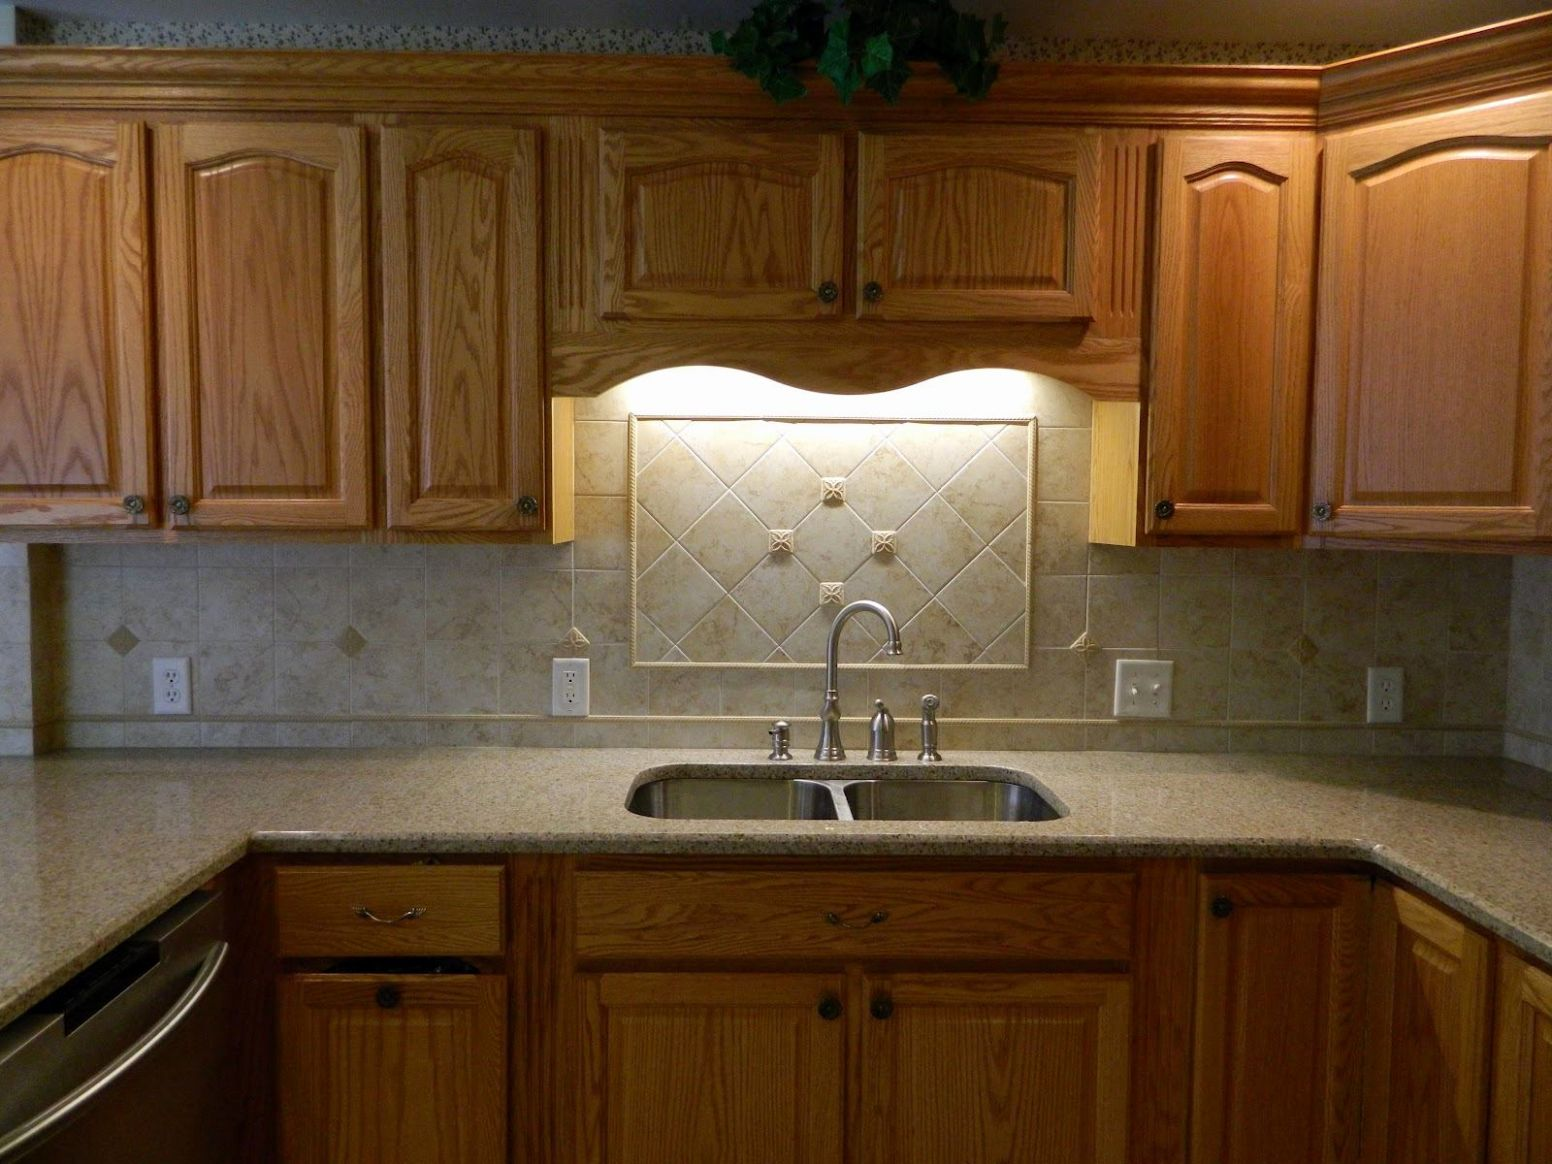 Picture of Natural Oak Cabinets with Granite Countertops - kitchen ideas oak cabinets